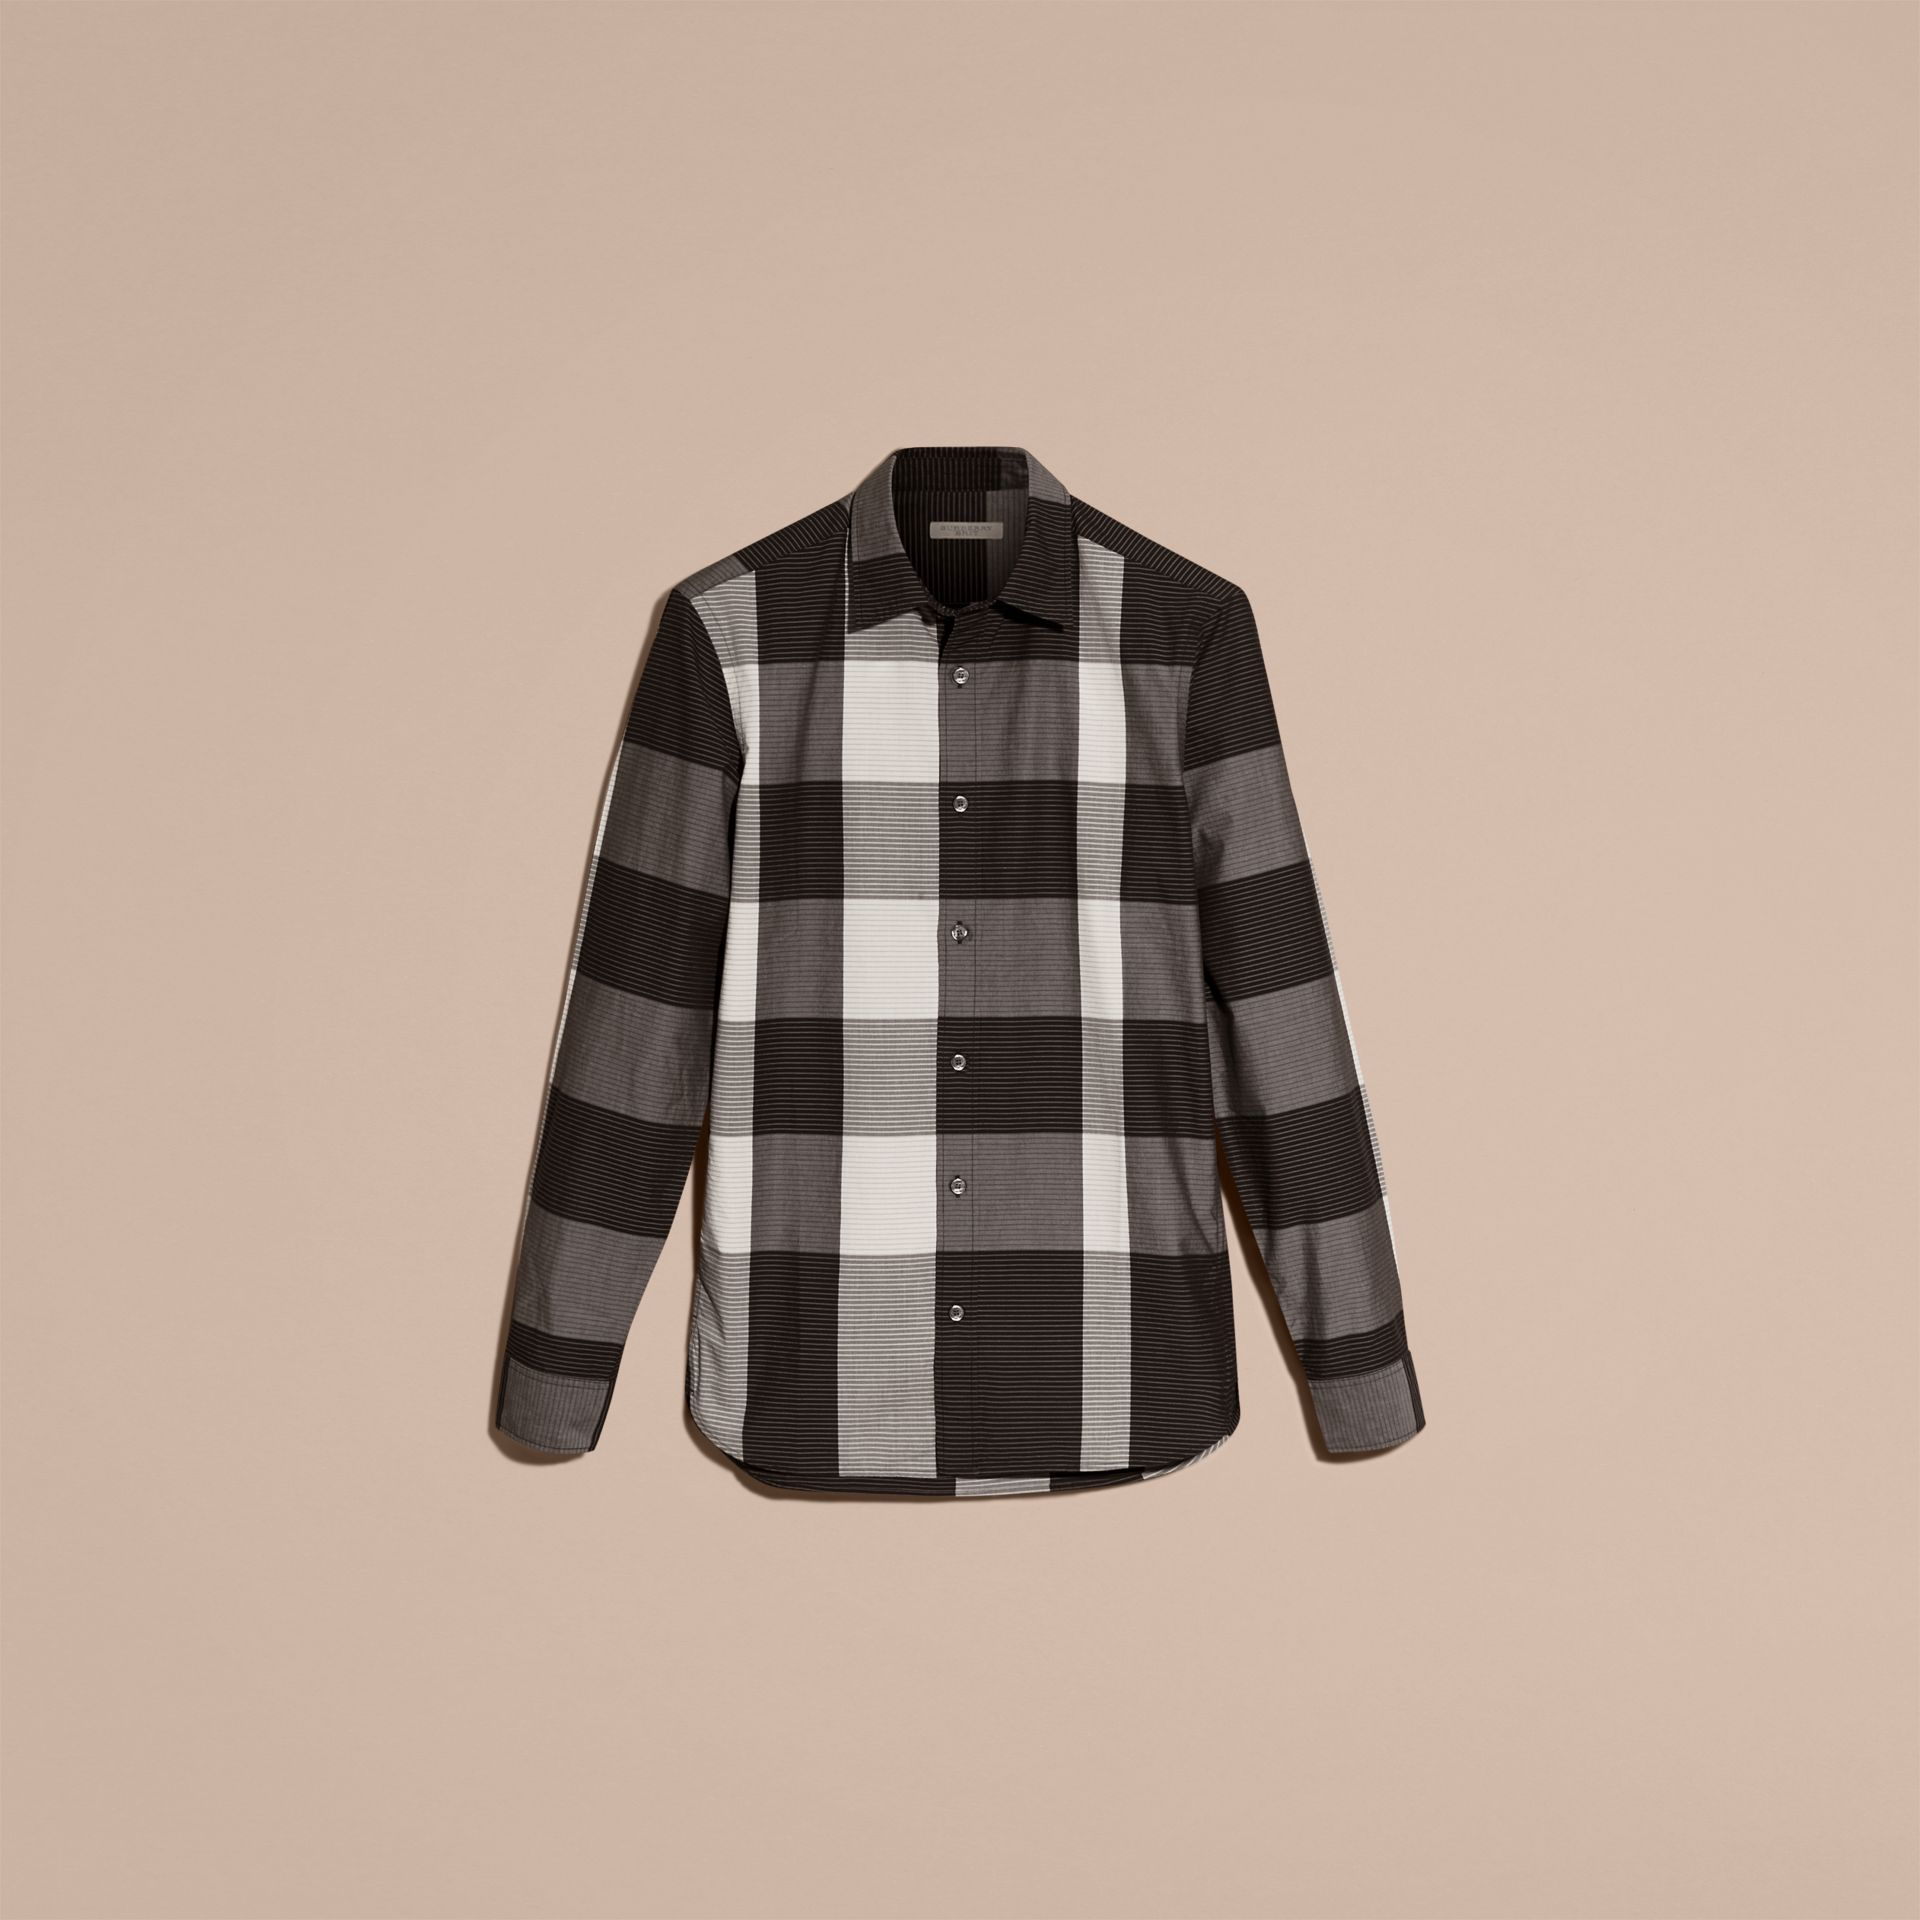 Black Graphic Check Cotton Shirt Black - gallery image 4